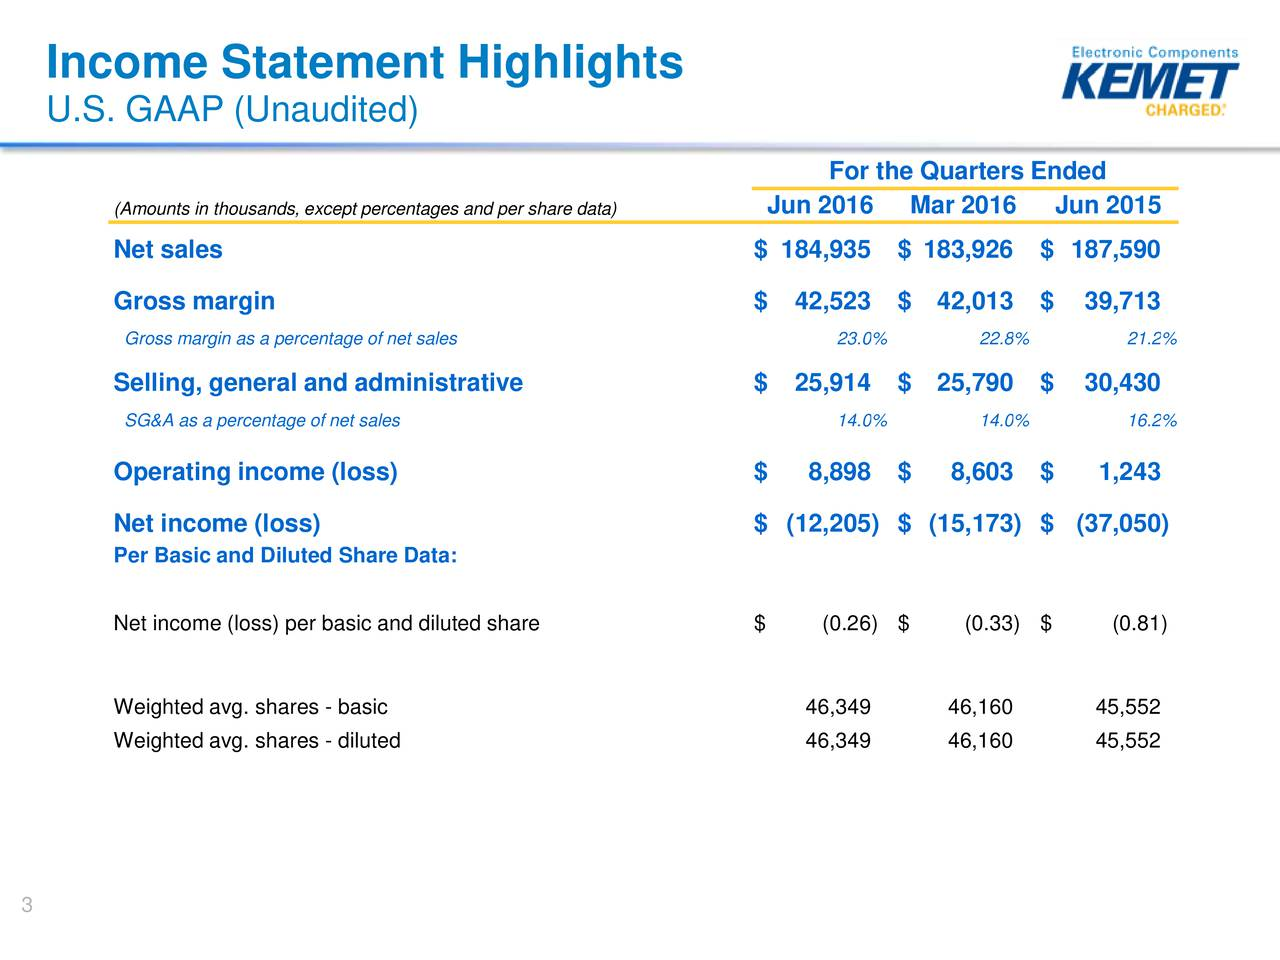 U.S. GAAP (Unaudited) For the Quarters Ended (Amounts in thousands, except percentages and per share data)016 Mar 2016 Jun 2015 Net sales $ 184,935 $ 183,926 $ 187,590 Gross margin $ 42,523 $ 42,013 $ 39,713 Gross margin as a percentage of net sales 23.0% 22.8% 21.2% Selling, general and administrative $ 25,914 $ 25,790 $ 30,430 SG&A as a percentage of net sales 14.0% 14.0% 16.2% Operating income (loss) $ 8,898 $ 8,603 $ 1,243 Net income (loss) $ (12,205) $ (15,173) $ (37,050) Per Basic and Diluted Share Data: Net income (loss) per basic and diluted share $ (0.26) $ (0.33) $ (0.81) Weighted avg. shares - basic 46,349 46,160 45,552 Weighted avg. shares - diluted 46,349 46,160 45,552 3